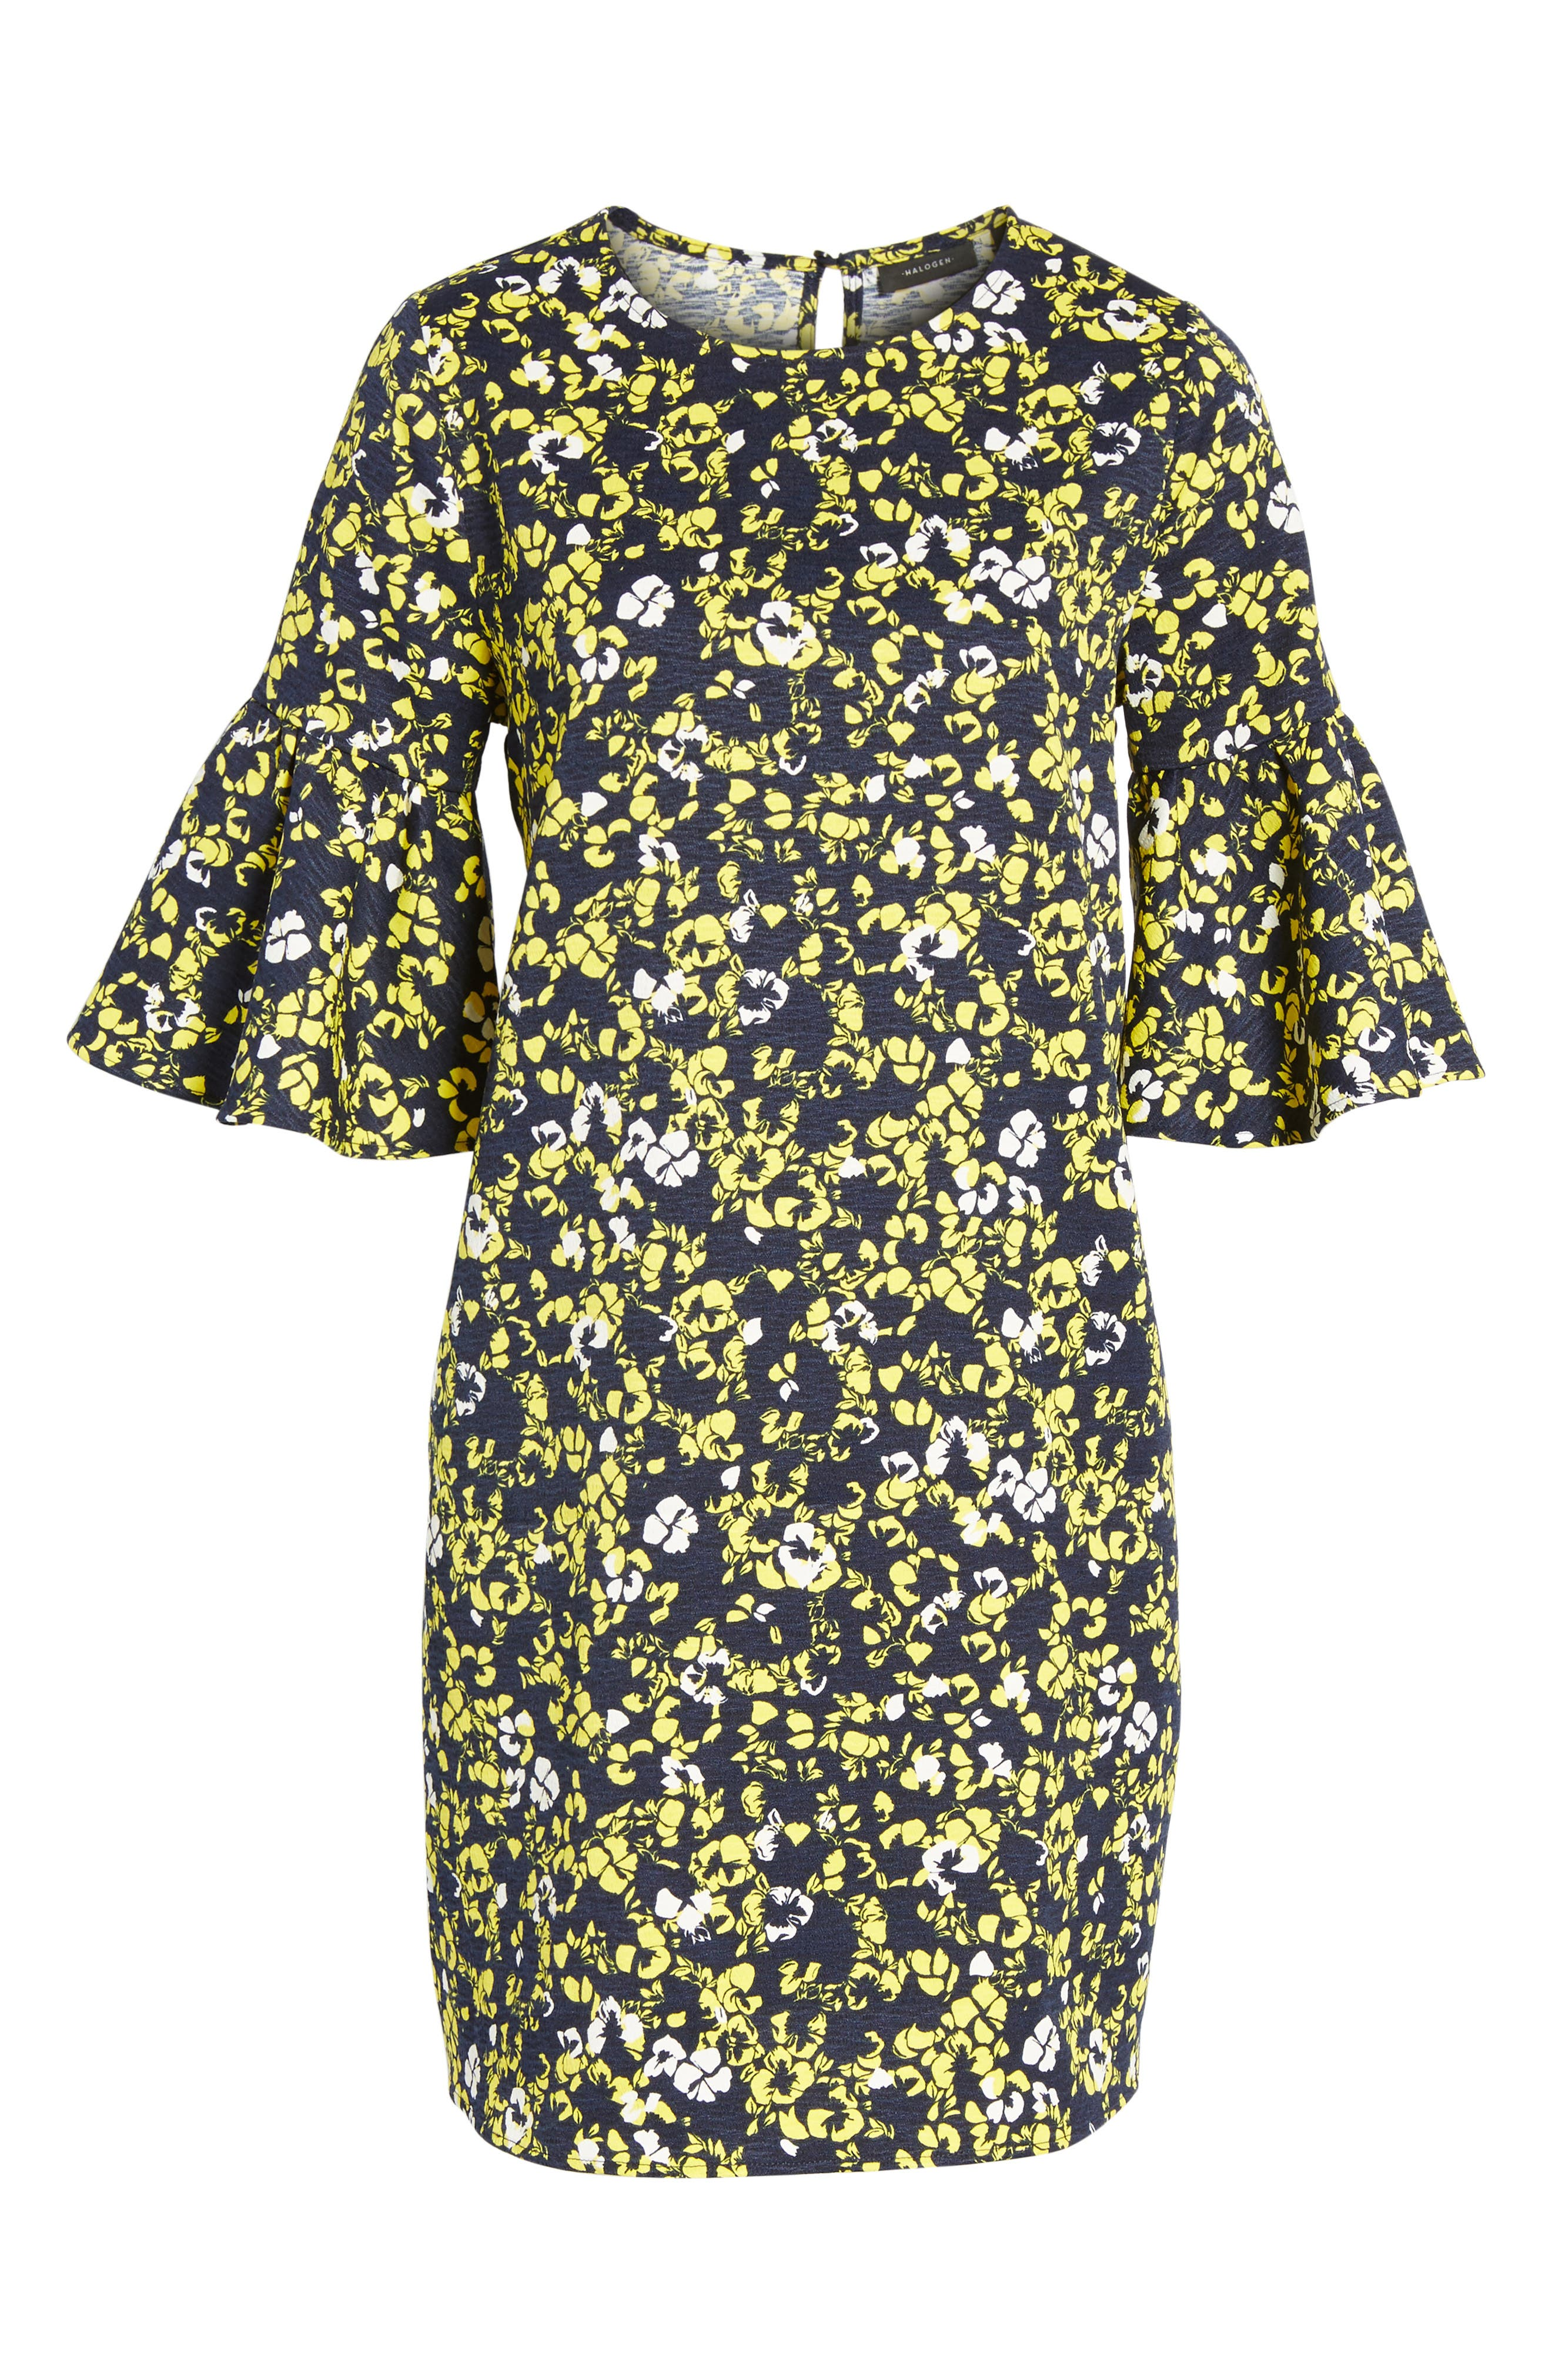 Ruffle Sleeve Shift Dress,                             Alternate thumbnail 6, color,                             Navy- Yellow Floral